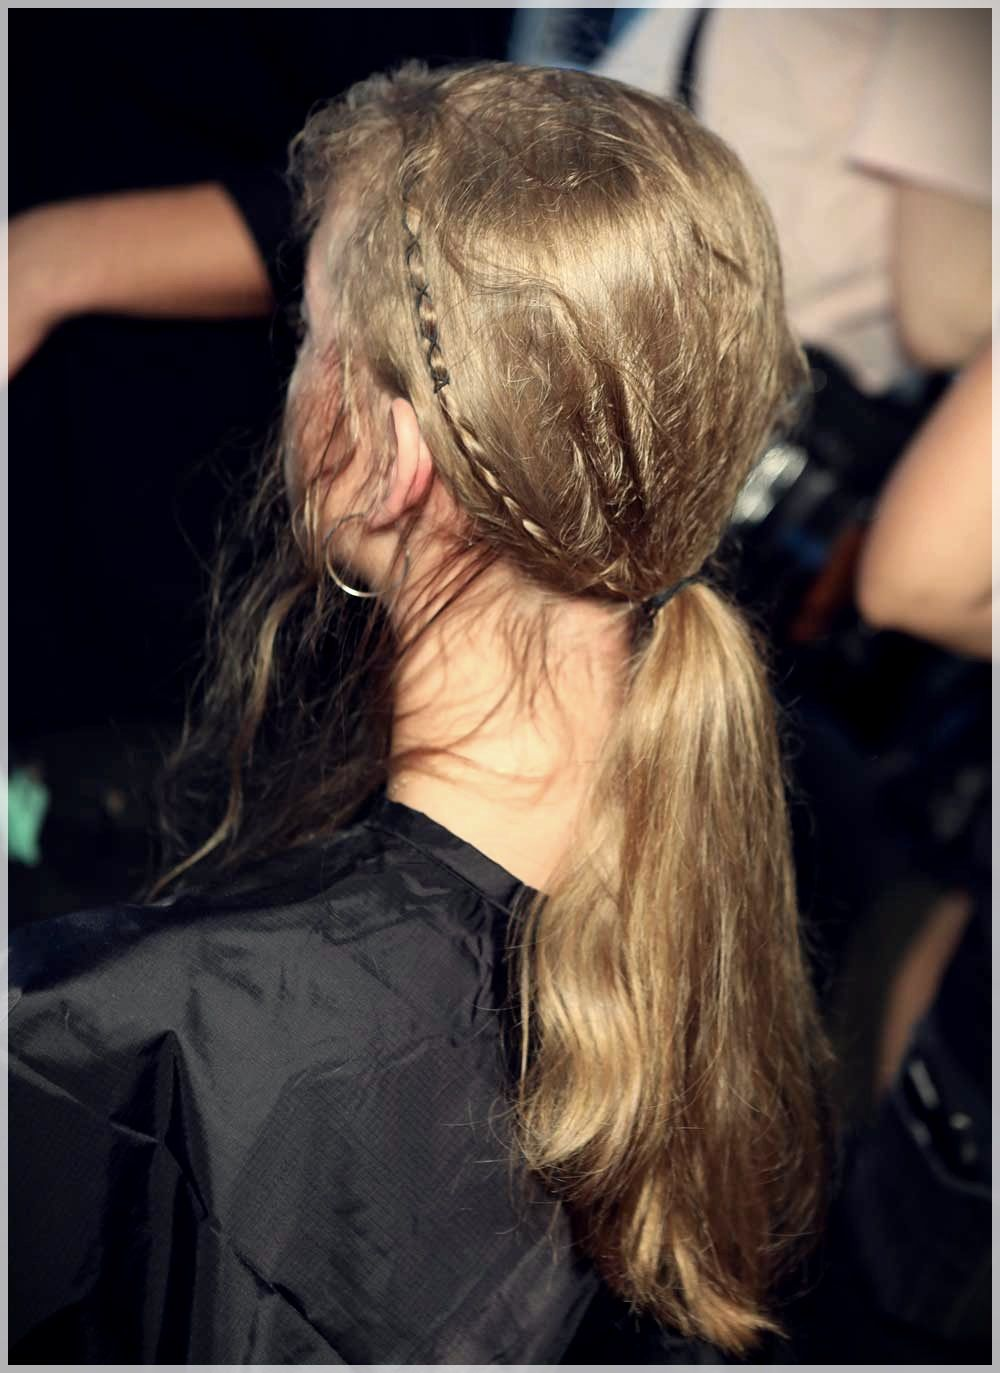 hairstyles spring summer 2019: the trendy looks | autumn winter